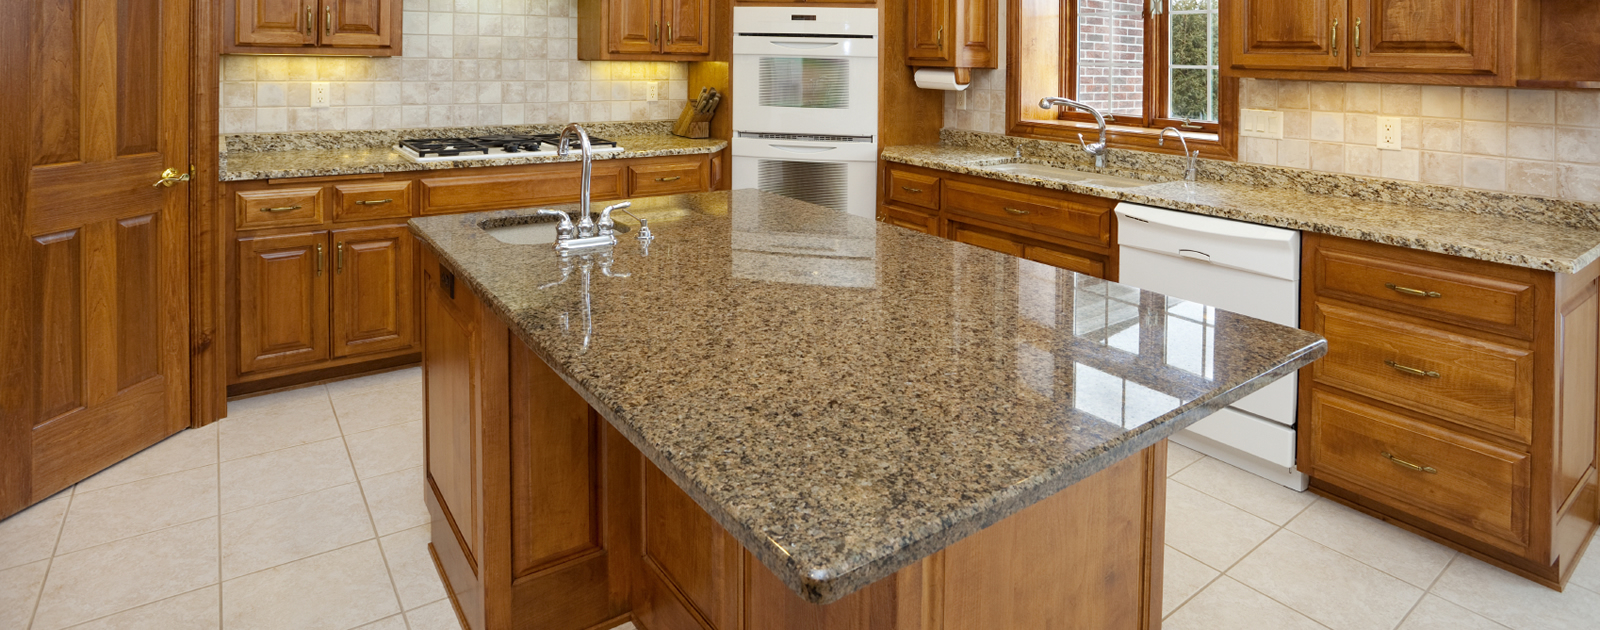 Granite Countertops For Kitchen Twin Cities Top Rated Discount Granite Countertop Installation